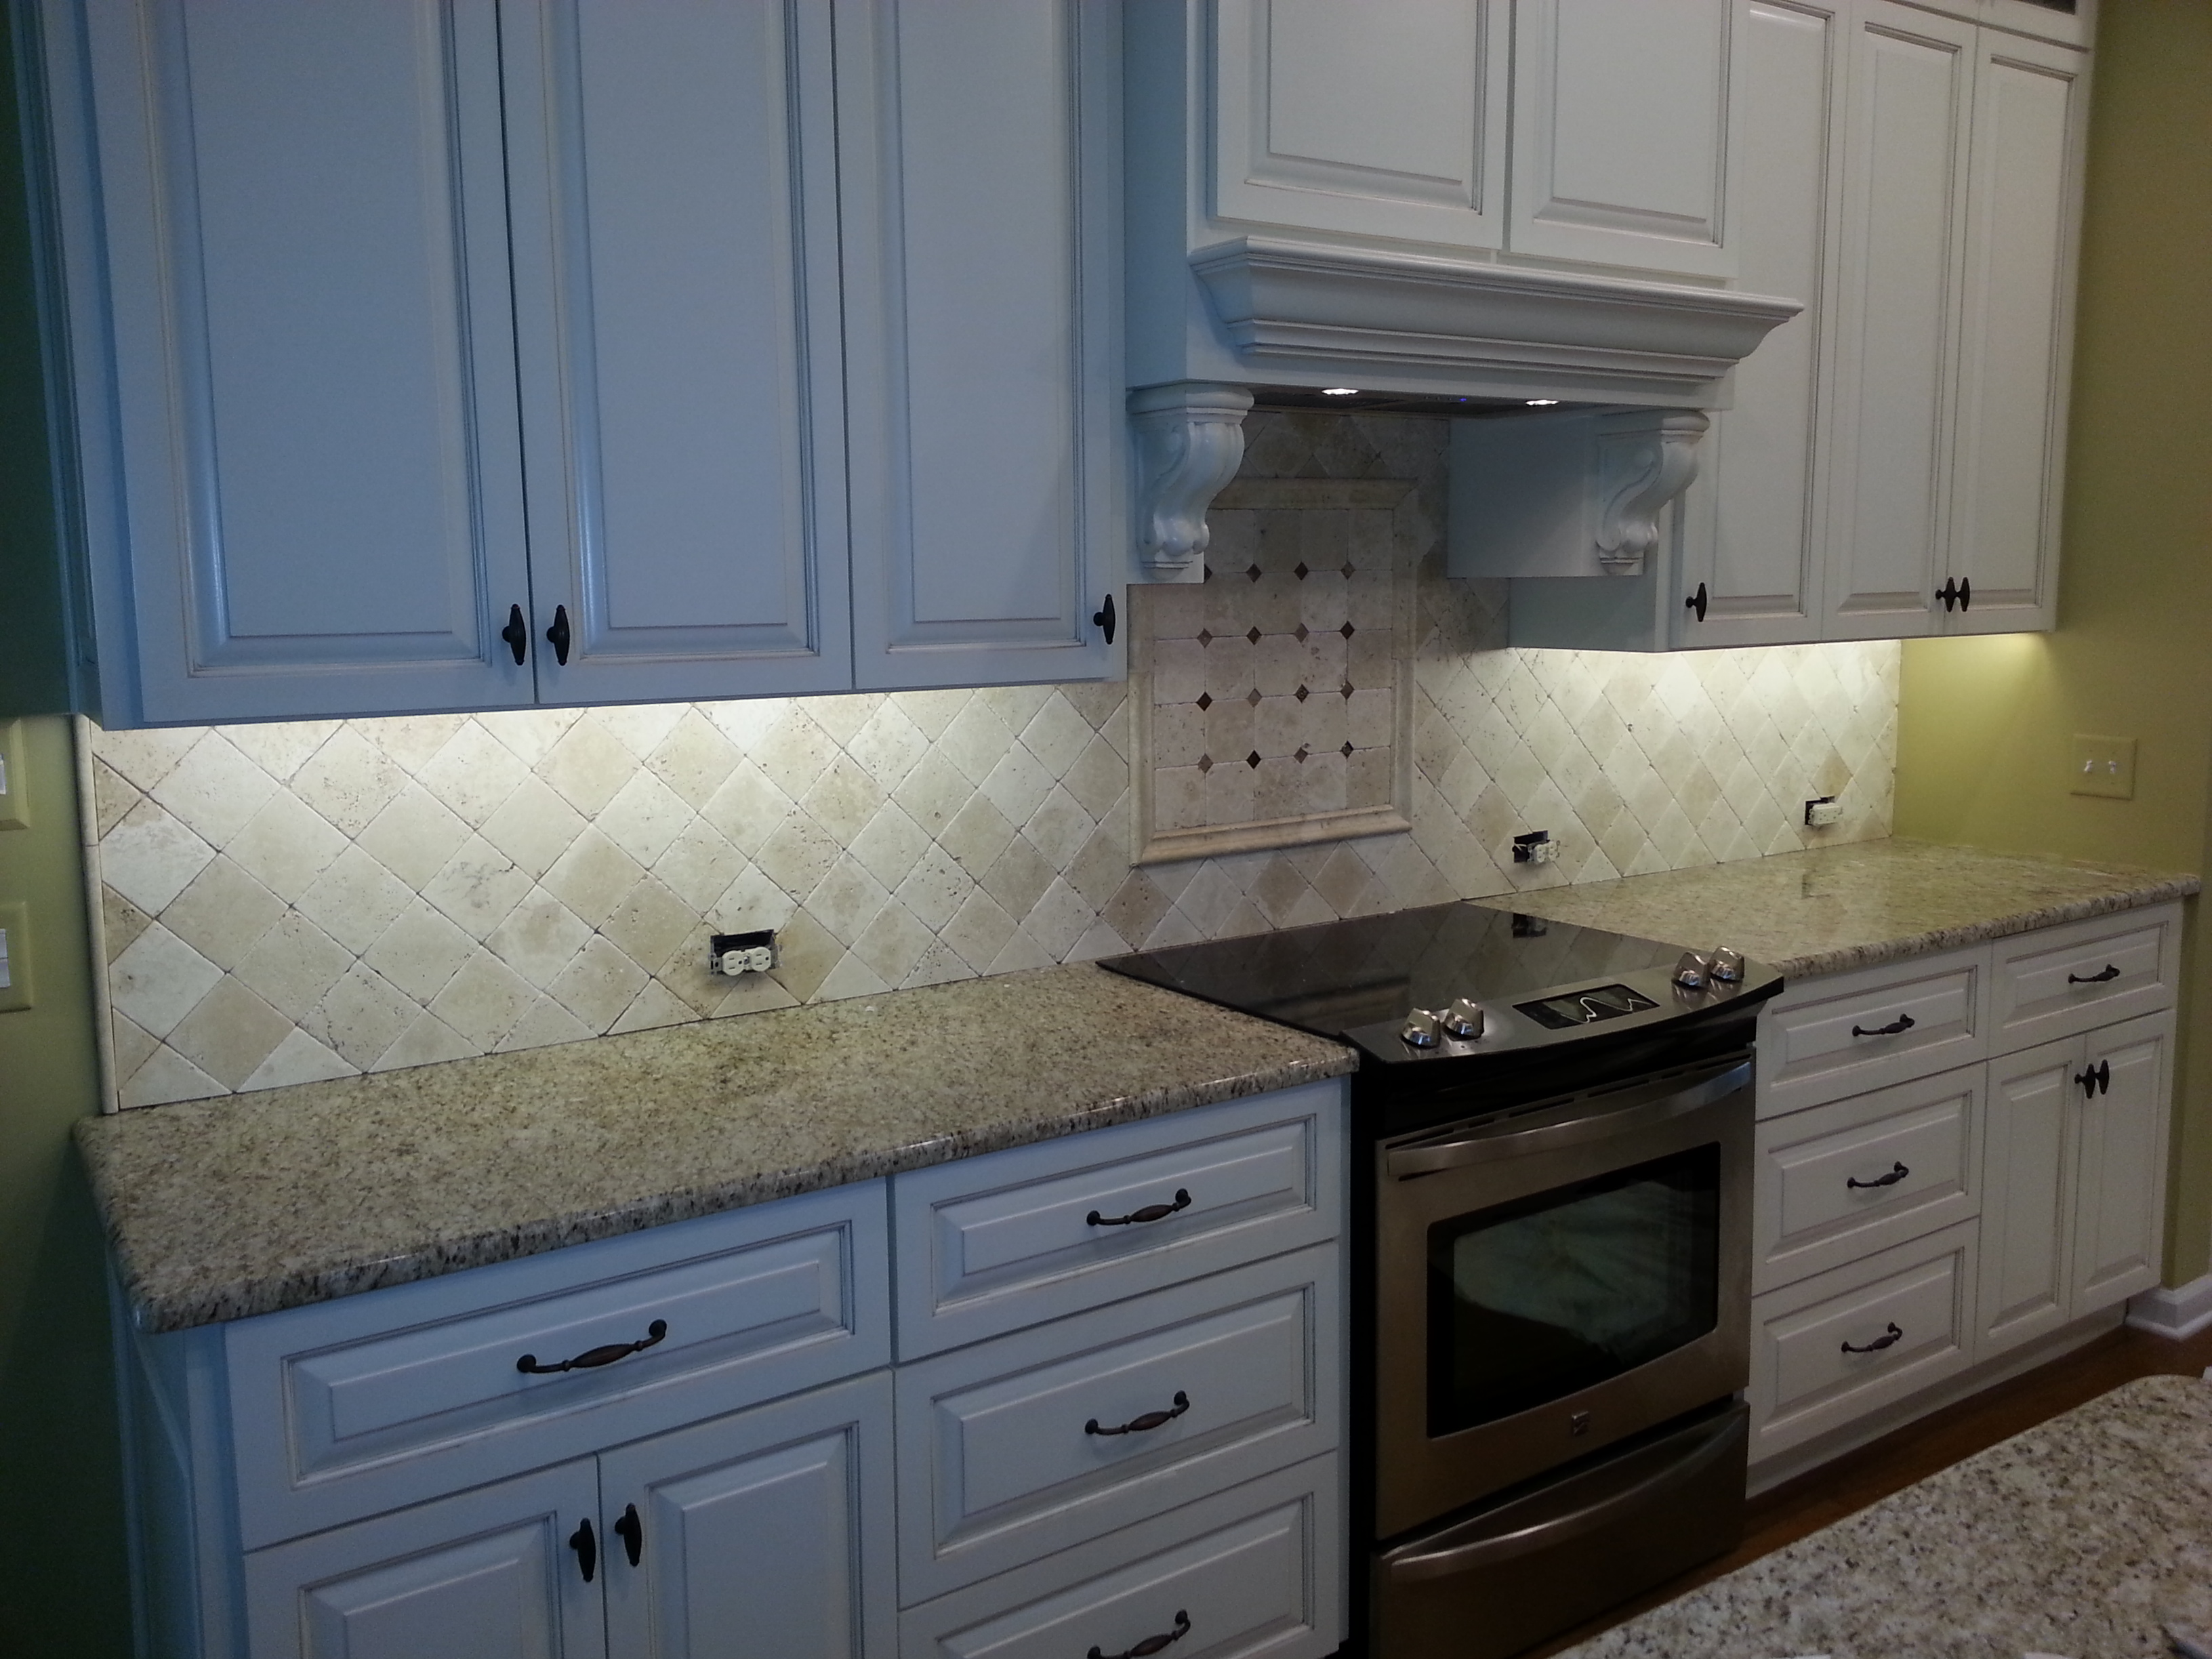 Wonderful AAA Completes Custom Kitchen Tile Backsplash Over Stove